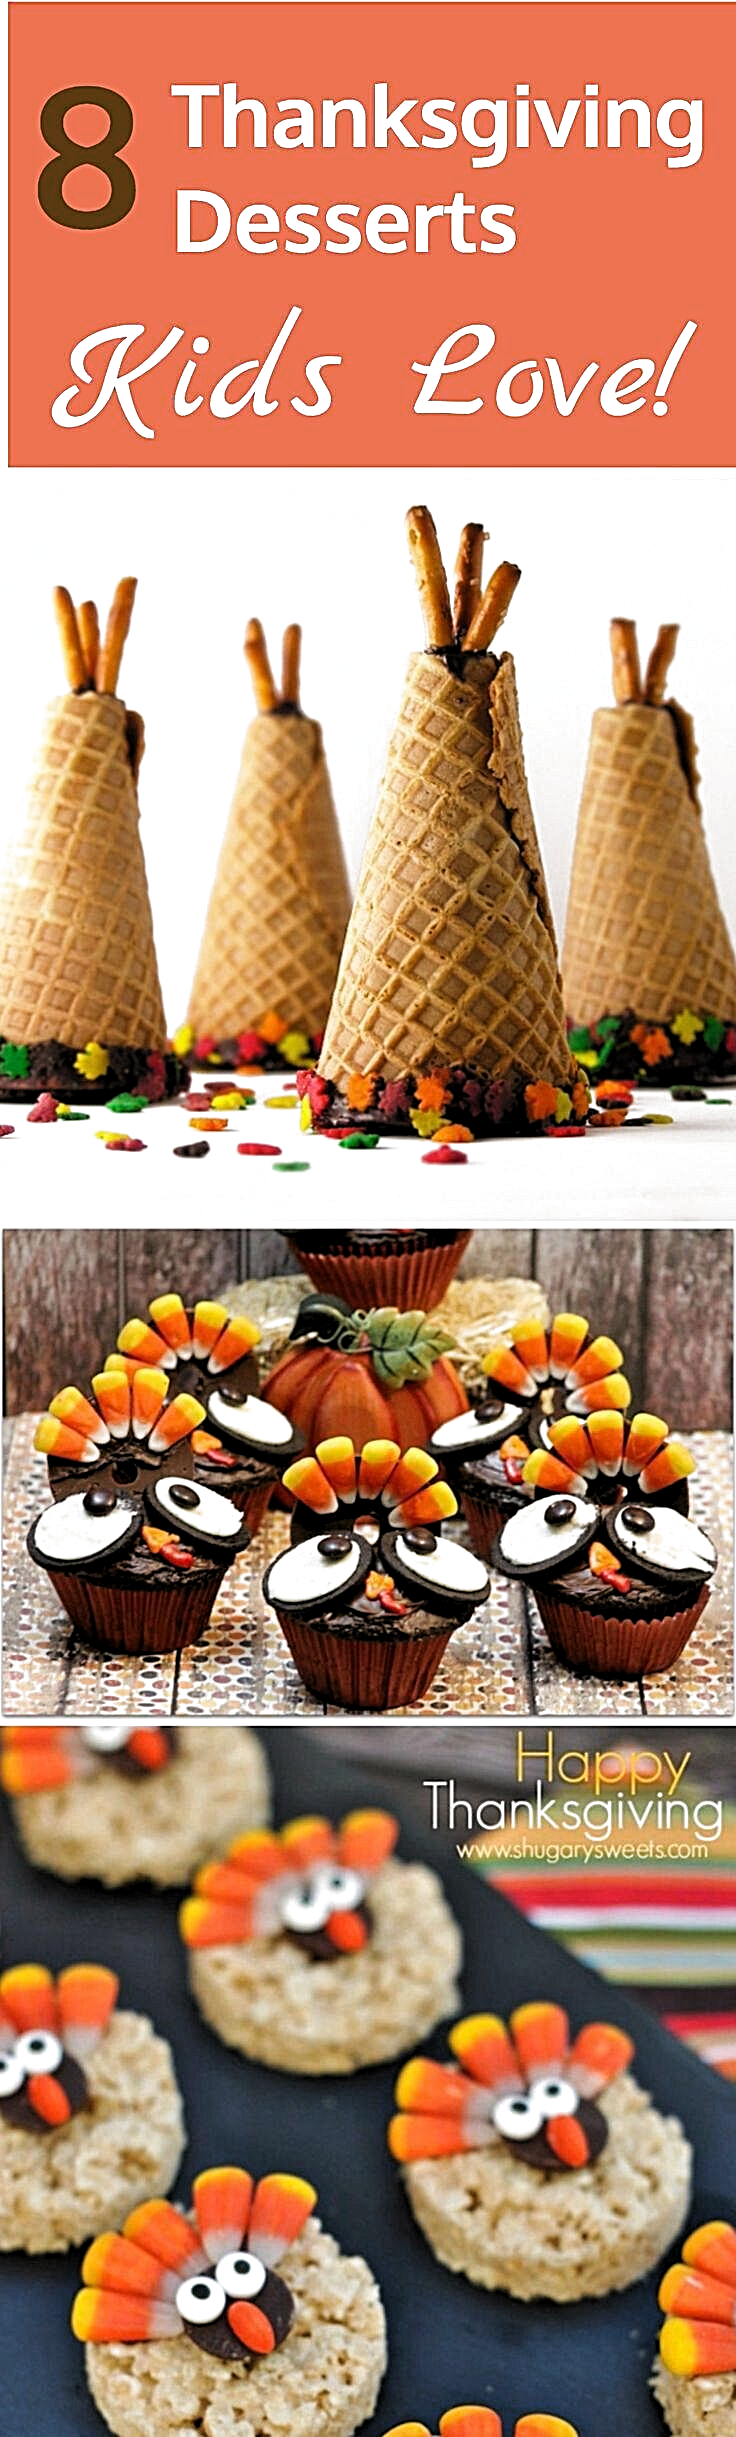 Looking for fun Thanksgiving ideas for your kids? Have a blast making these great Thanksgiving desserts! Thanksgiving Desserts Kids Love! - Easy Thanksgiving Desserts Kids Love - Discover fun and unique Thanksgiving desserts that you can make with your kids.  #thanksgiving #thanksgivingcrafts #thanksgivingdesserts #foodgallery #recipeinspiration #foodgood #foodtalk #foodielife #foodismedicine #recipecomingsoon #foodreview #foodlovers #foodanddrink #foodfood #foodphoto #recipeblog #foodtography #